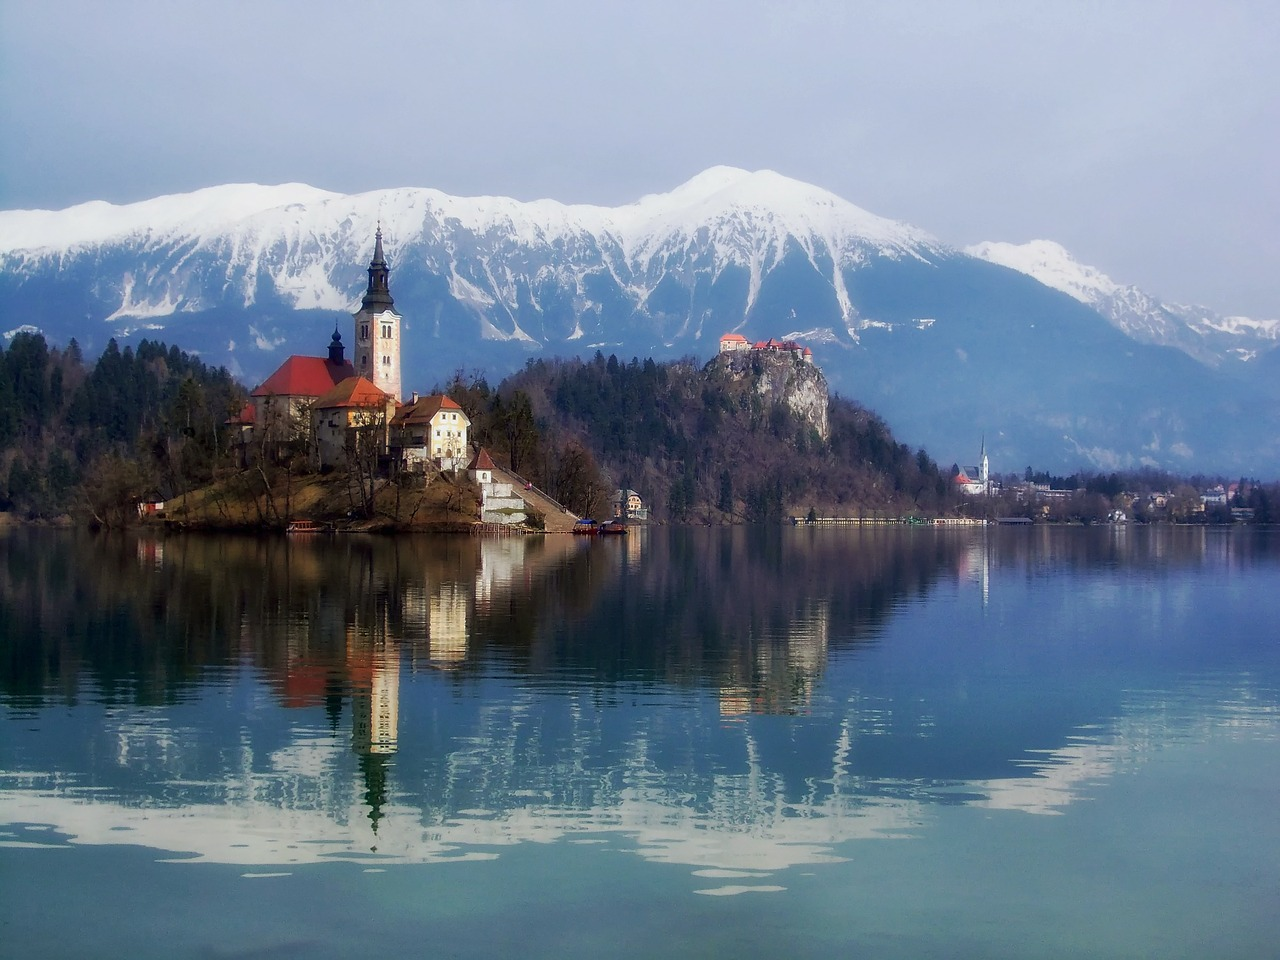 Snow capped mountains rise above a cathedral and some water in the Balkans.